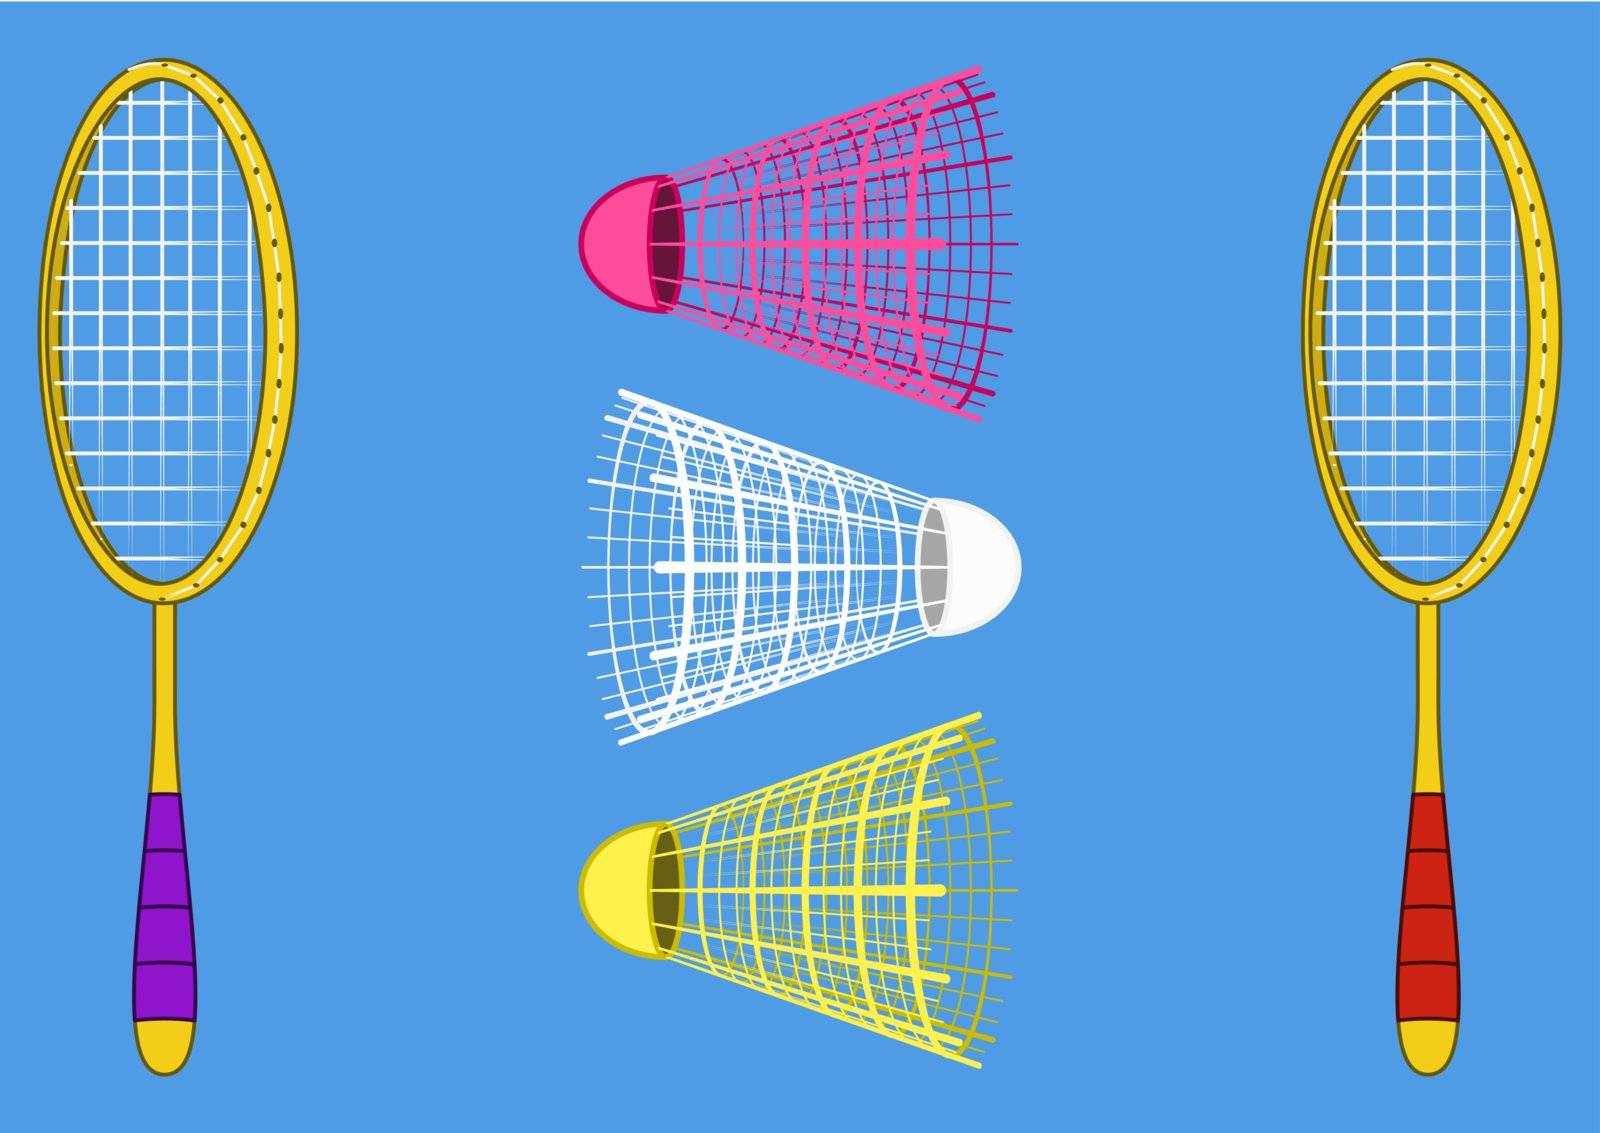 Set objects of sporting equipment for badminton game: two rackets and three shuttlecocks on blue background. Vector